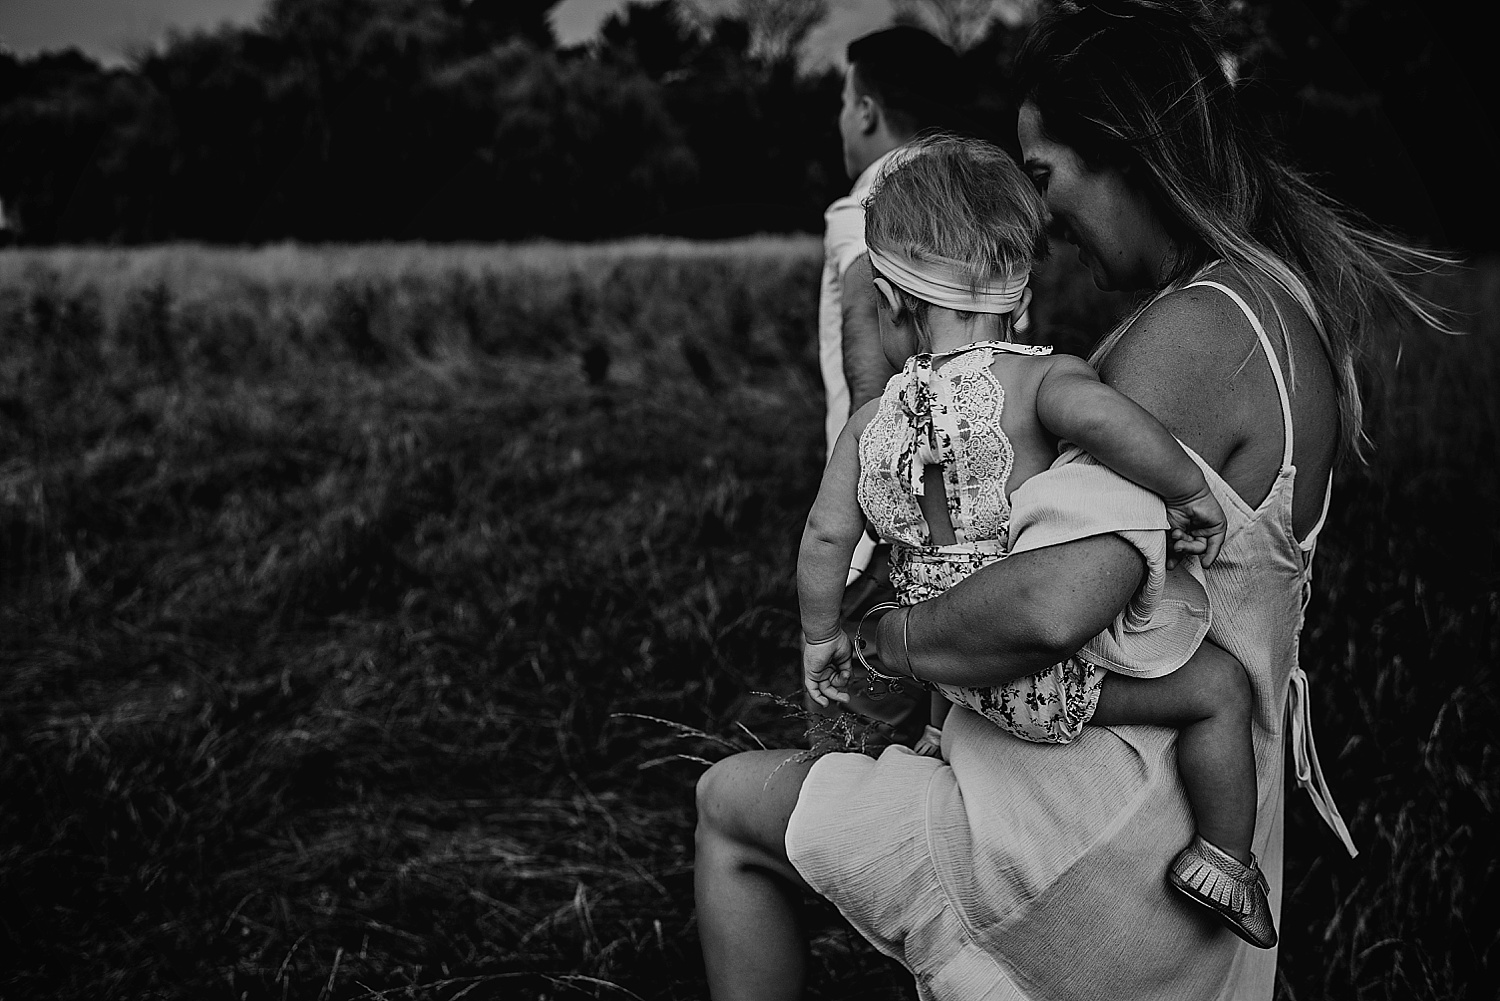 yurcho-family-child-photographer-akron-canton-cleveland-ohio-lauren-grayson-photography